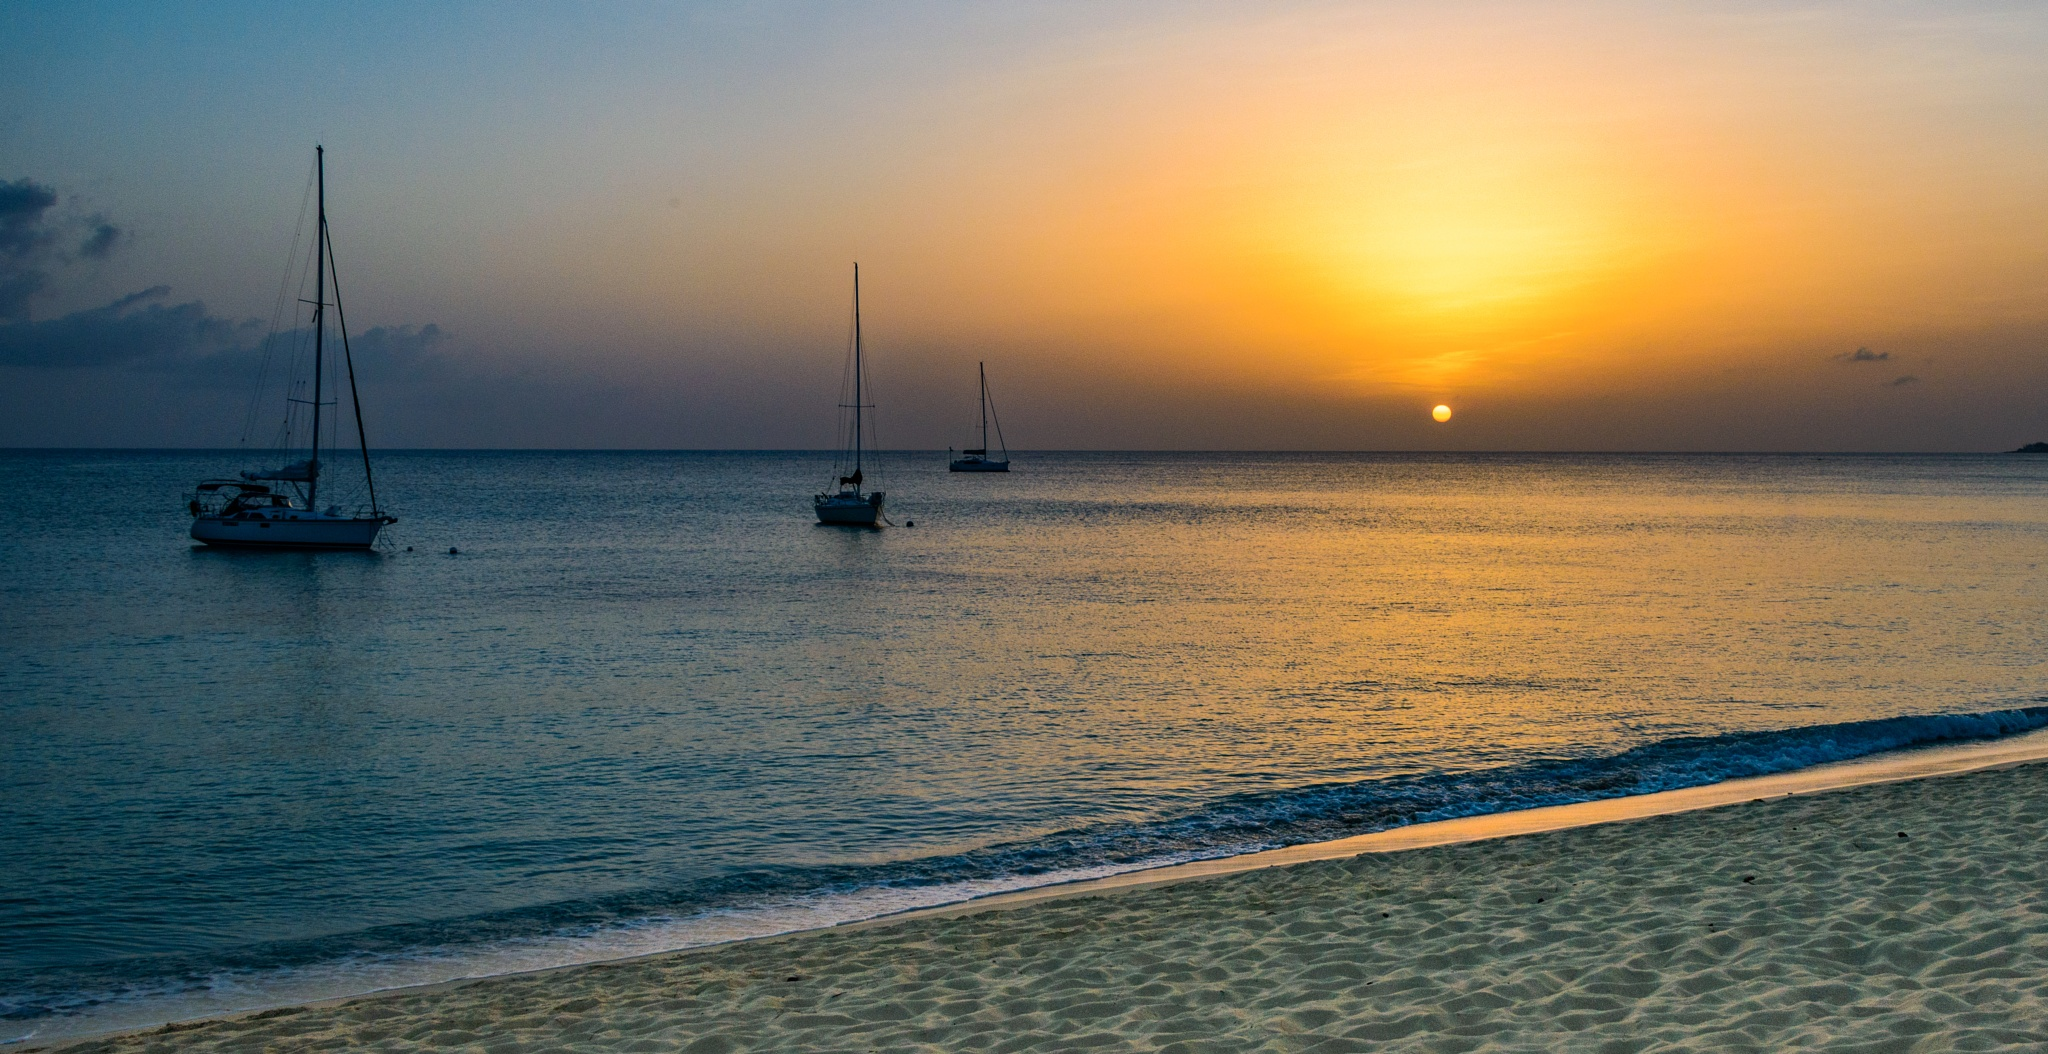 Sunset at Seven Mile Beach by Steve Director